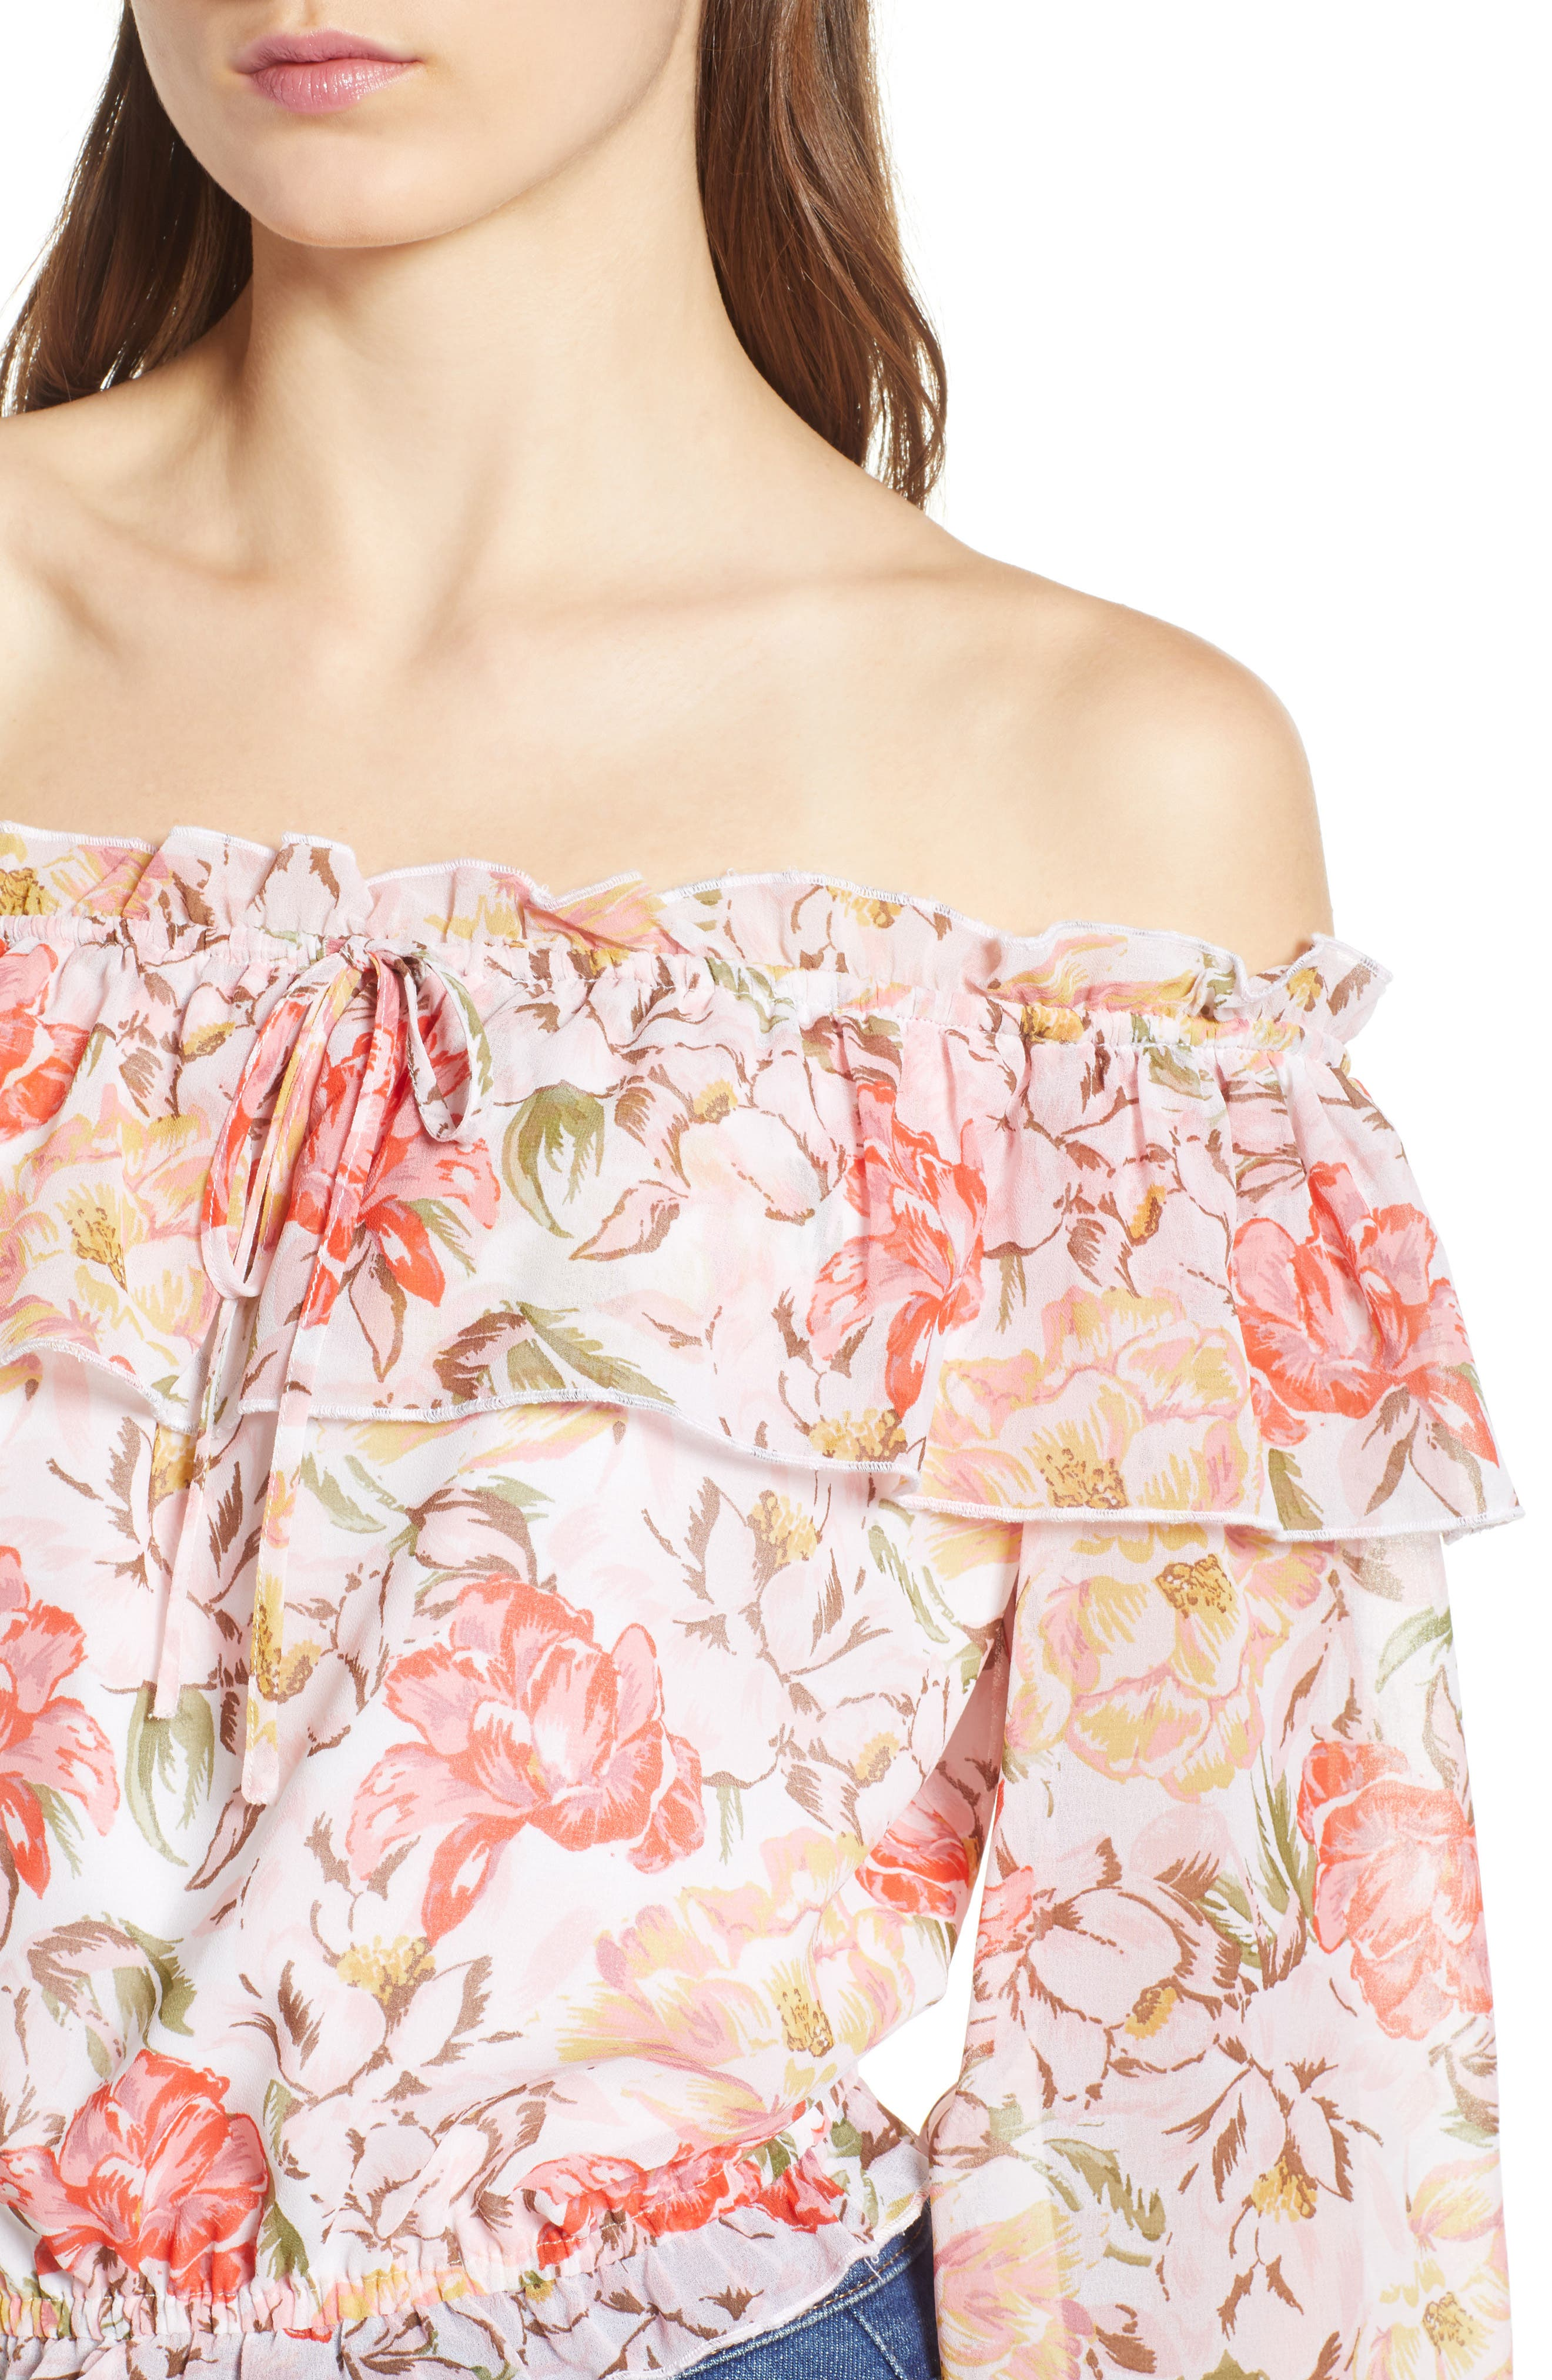 Cosenza Off the Shoulder Crop Top,                             Alternate thumbnail 4, color,                             Ivory Floral